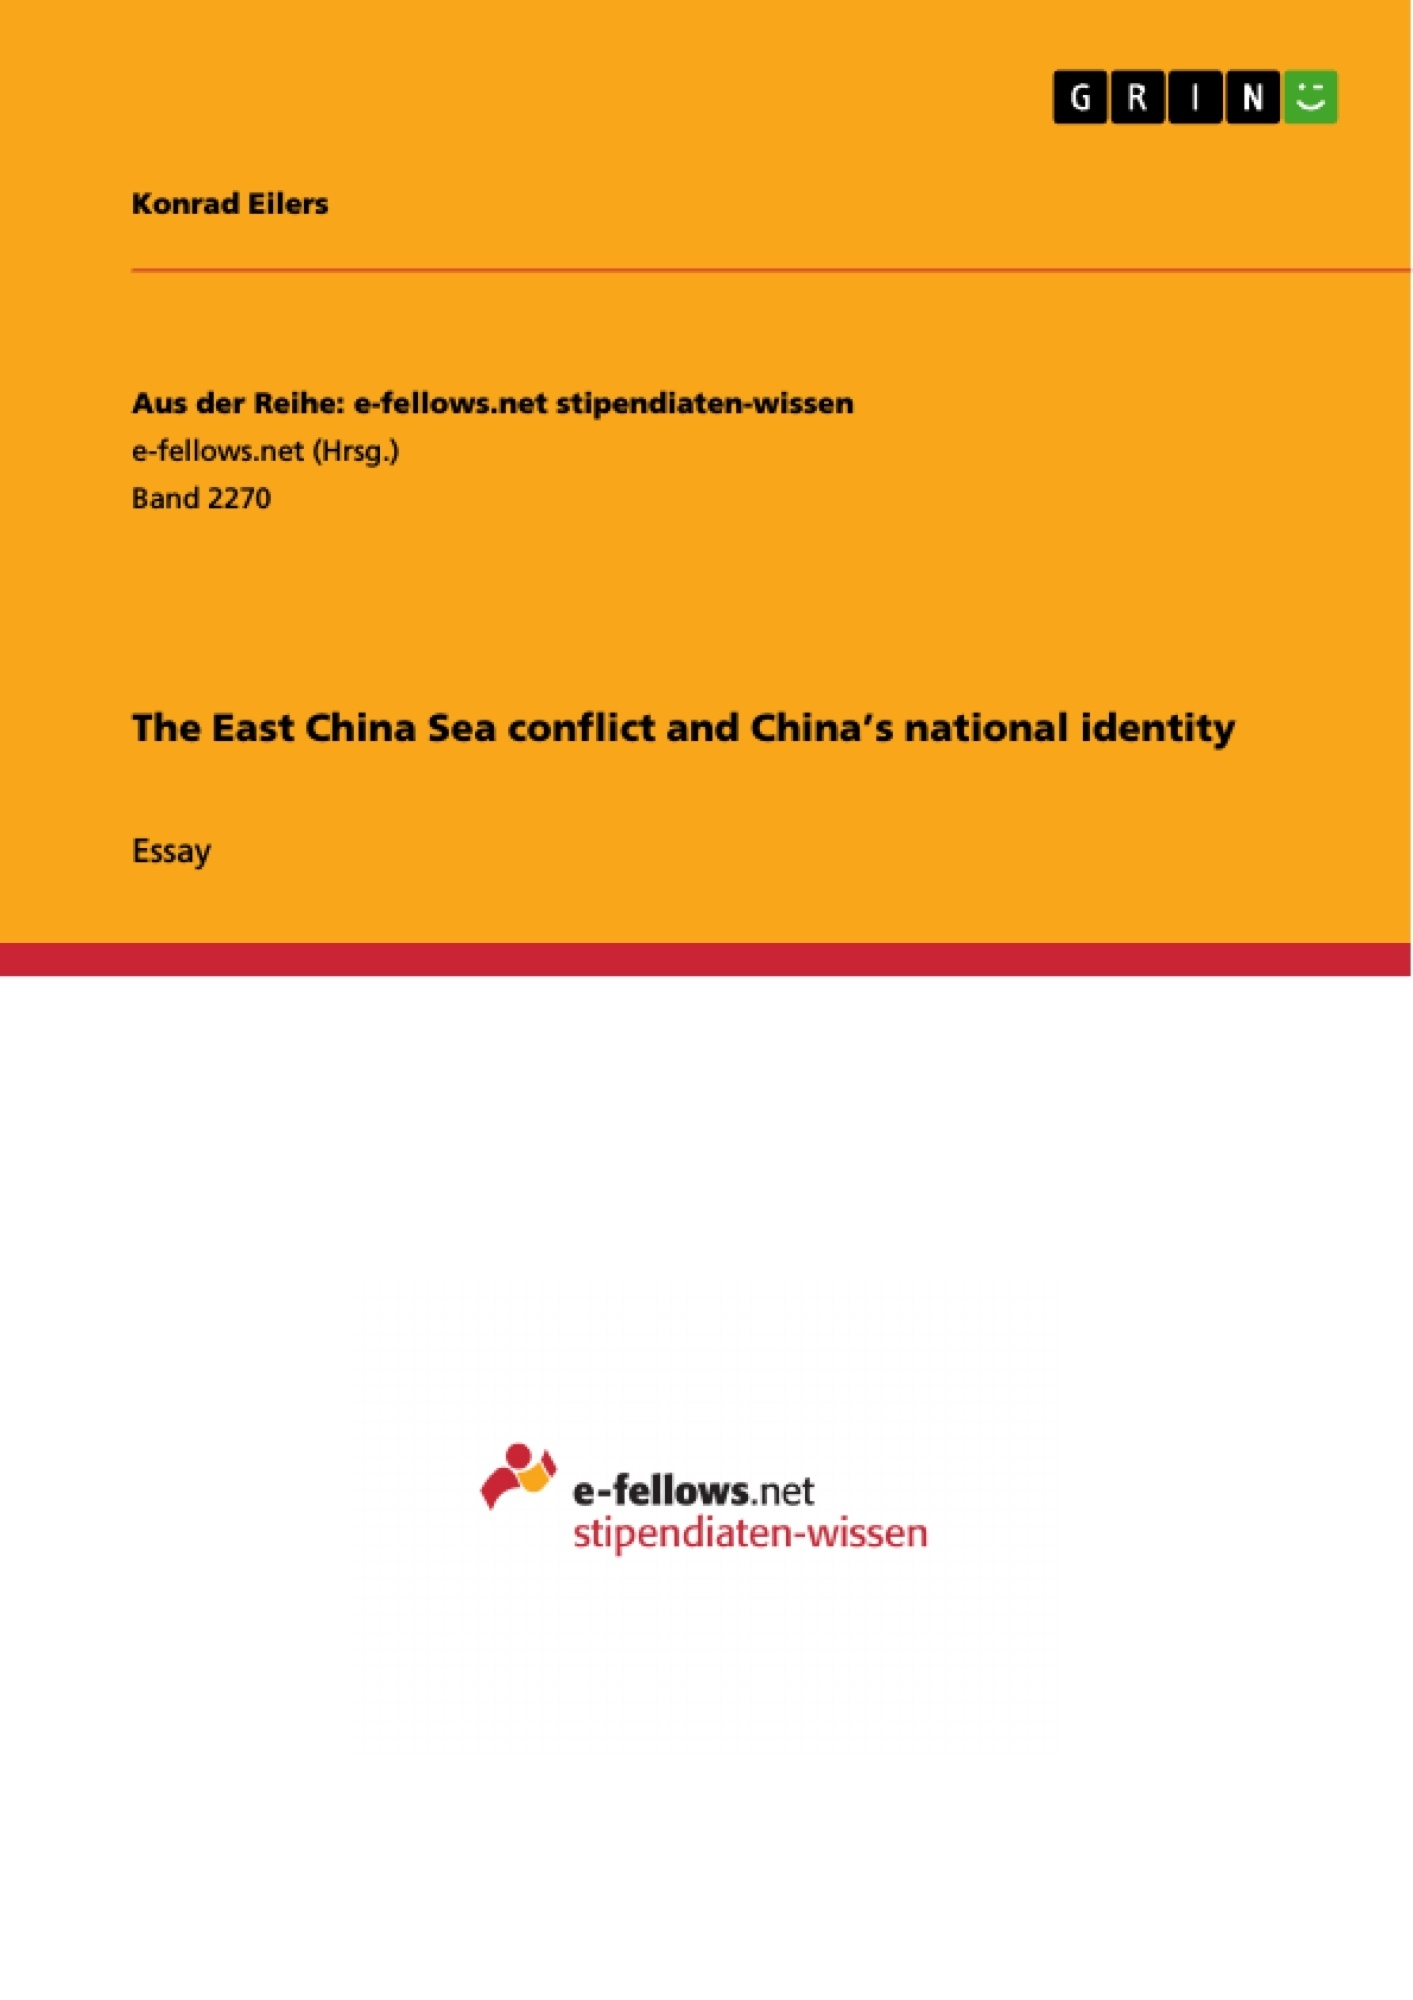 Title: The East China Sea conflict and China's national identity